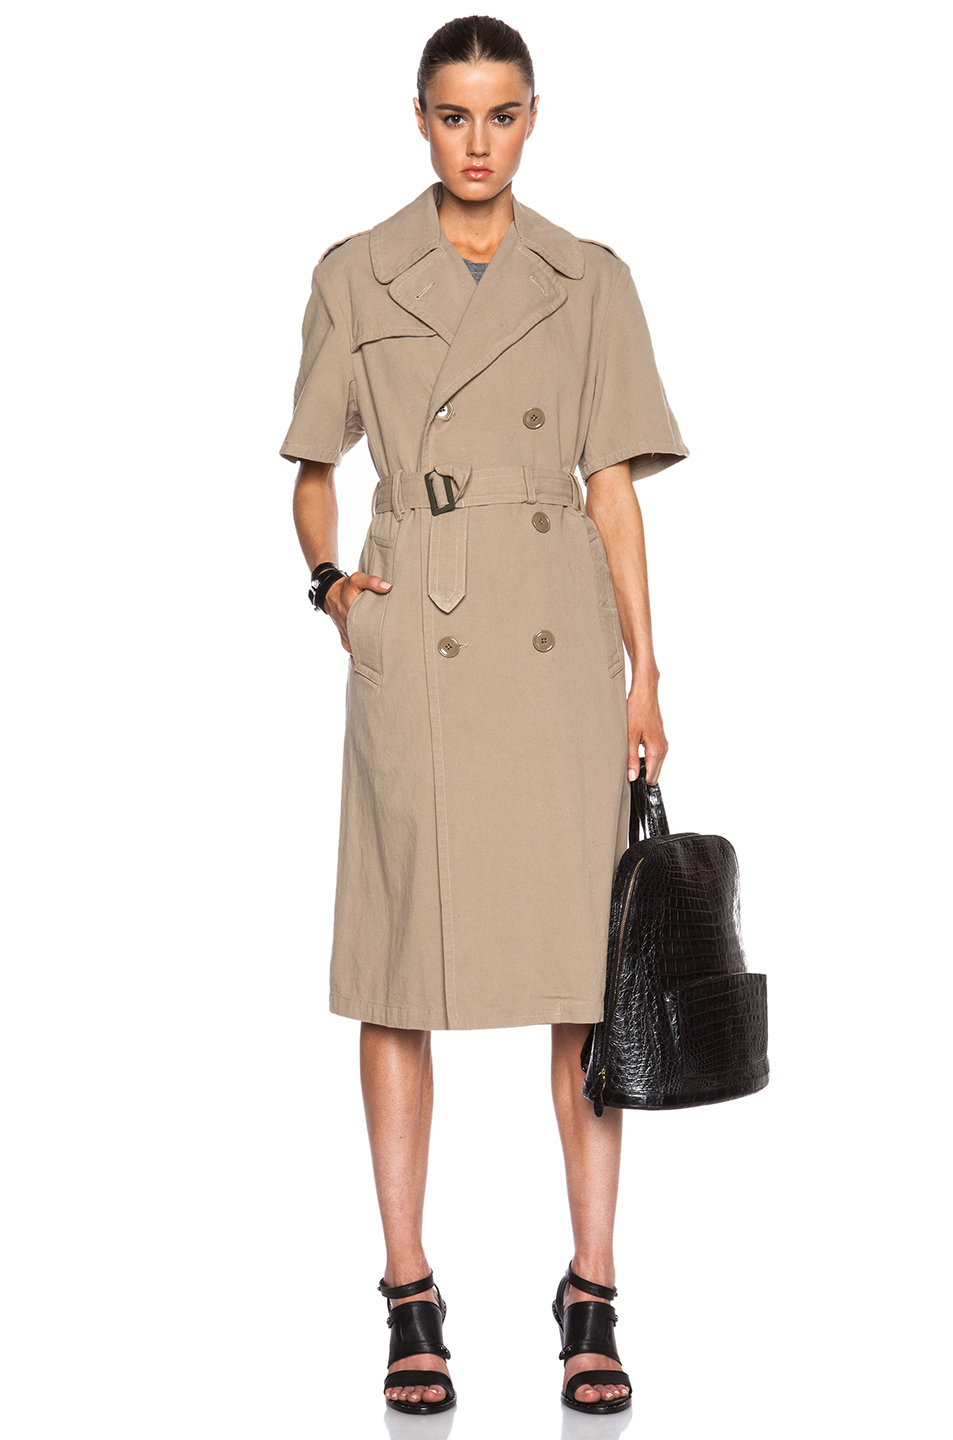 NLST Trench Coat,  Forward,  $215